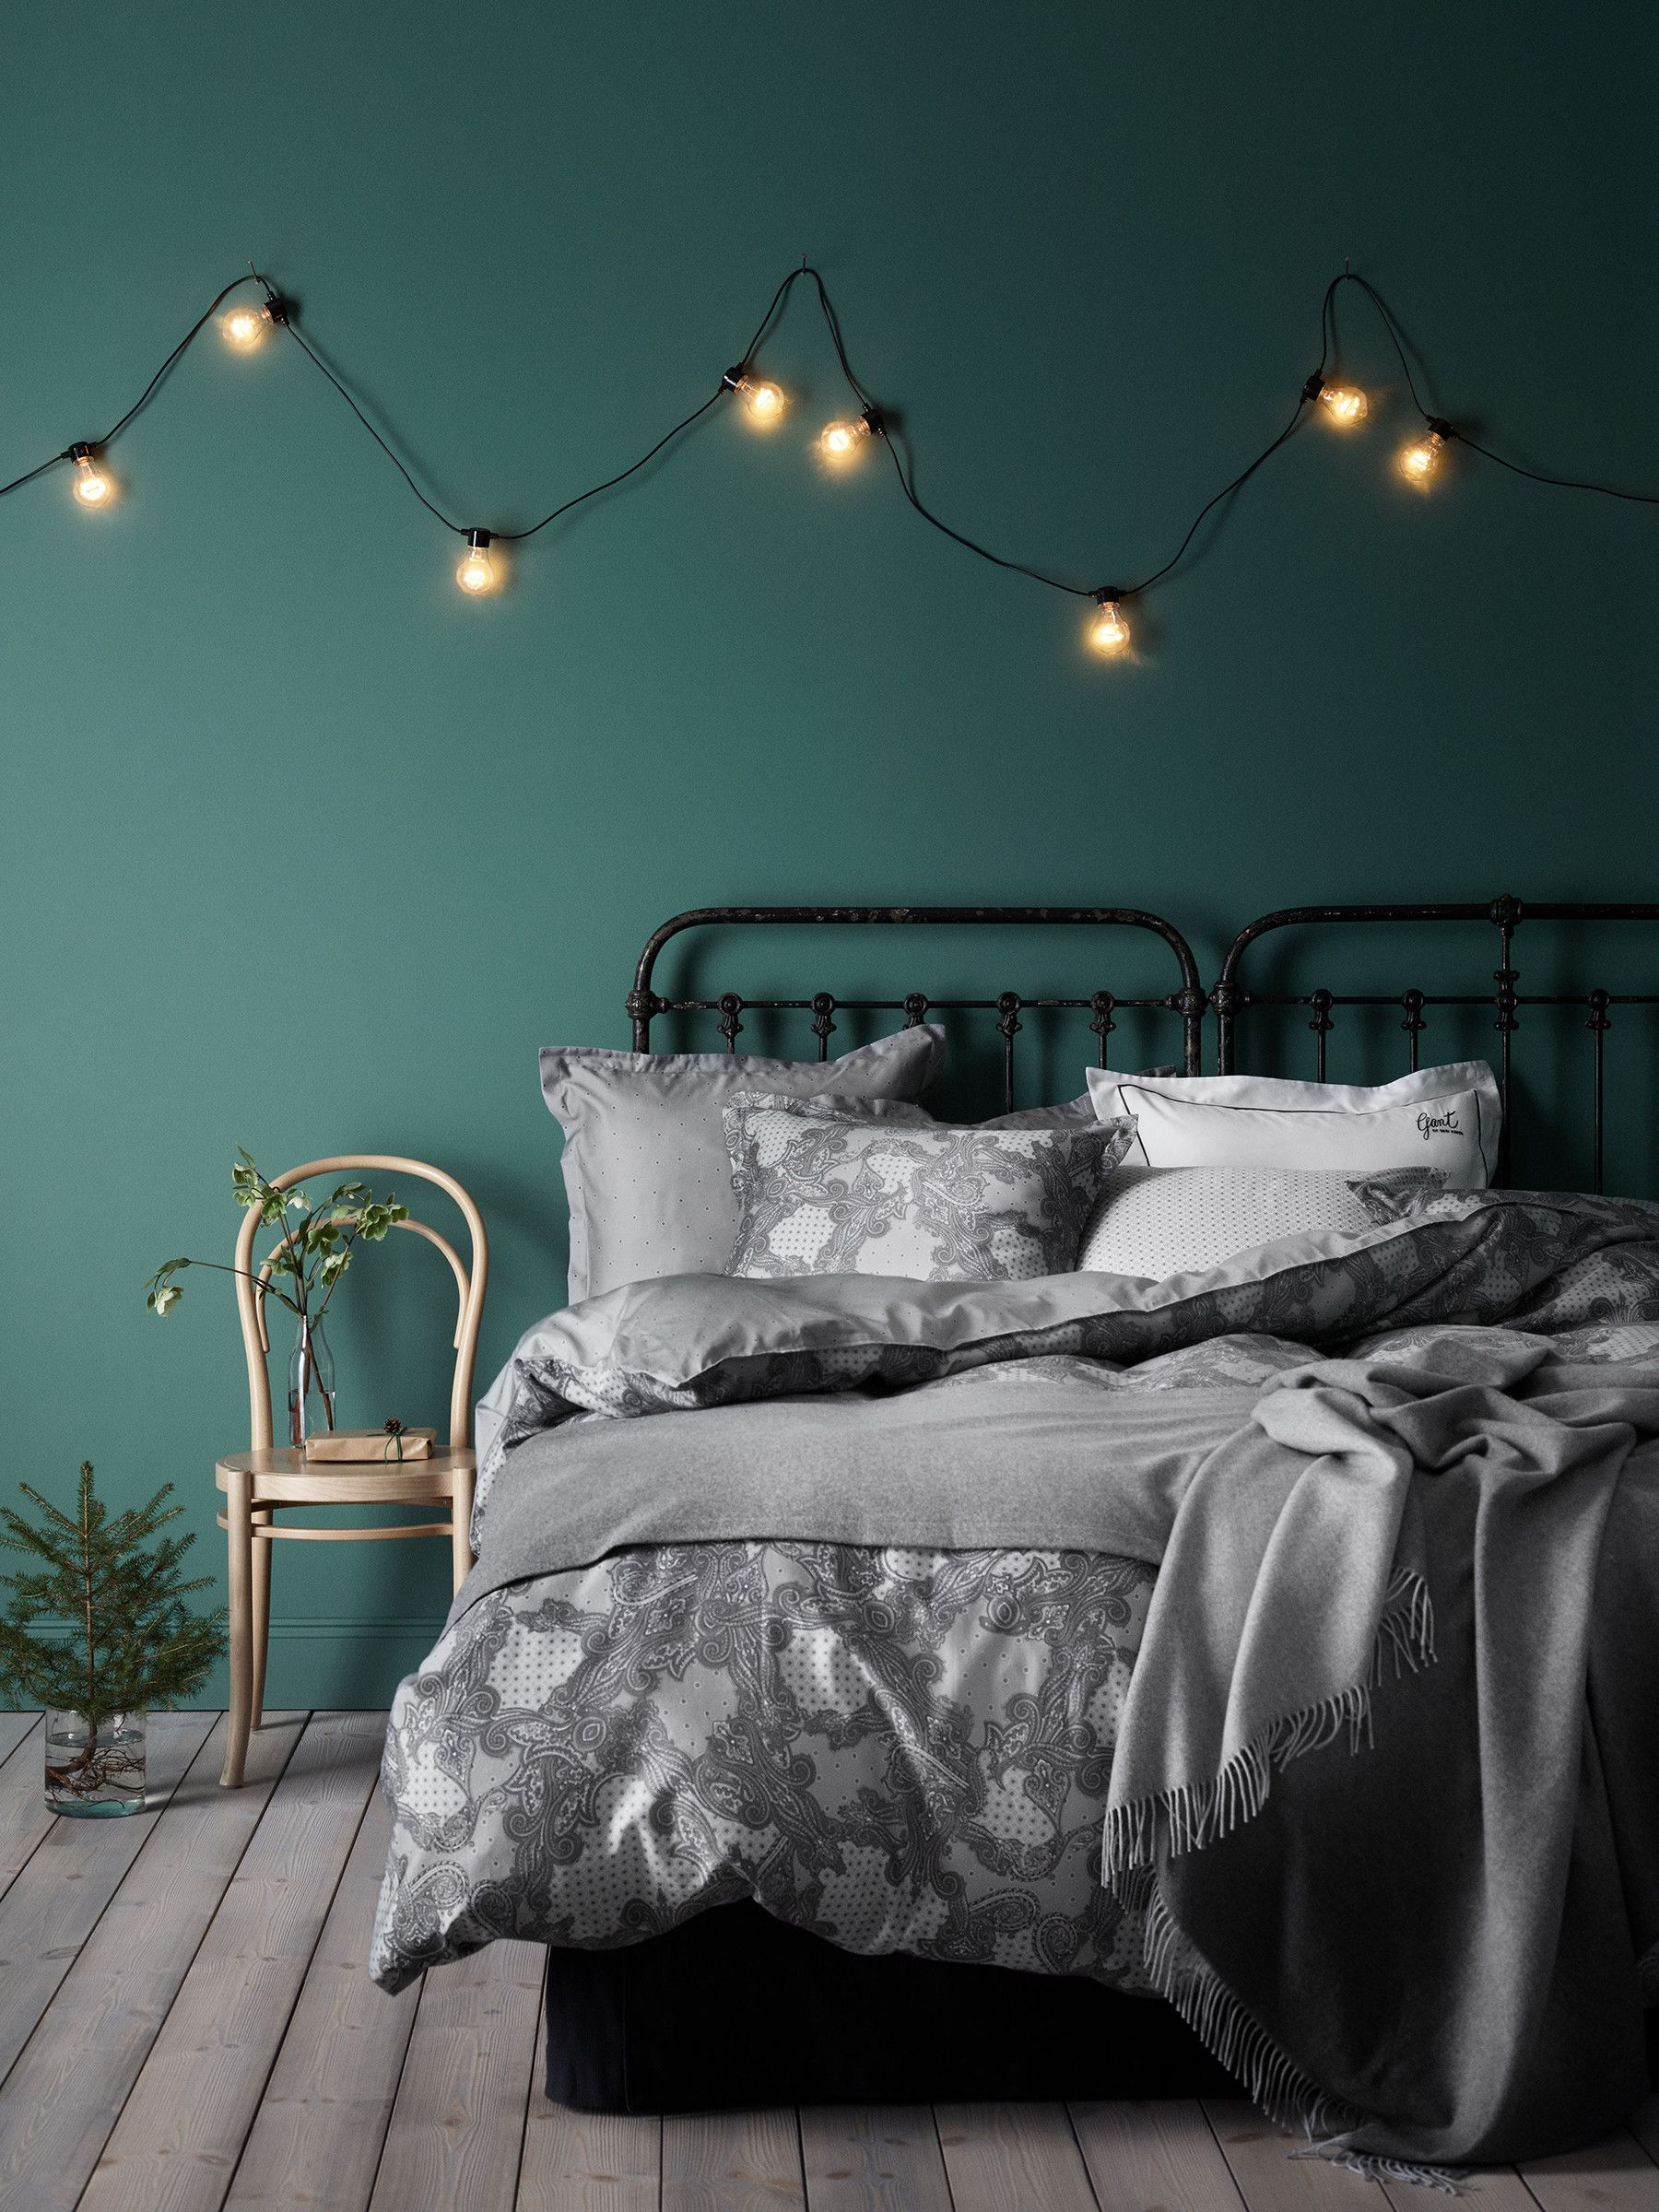 Green and grey bedroom | residential interiors | Grey green ...